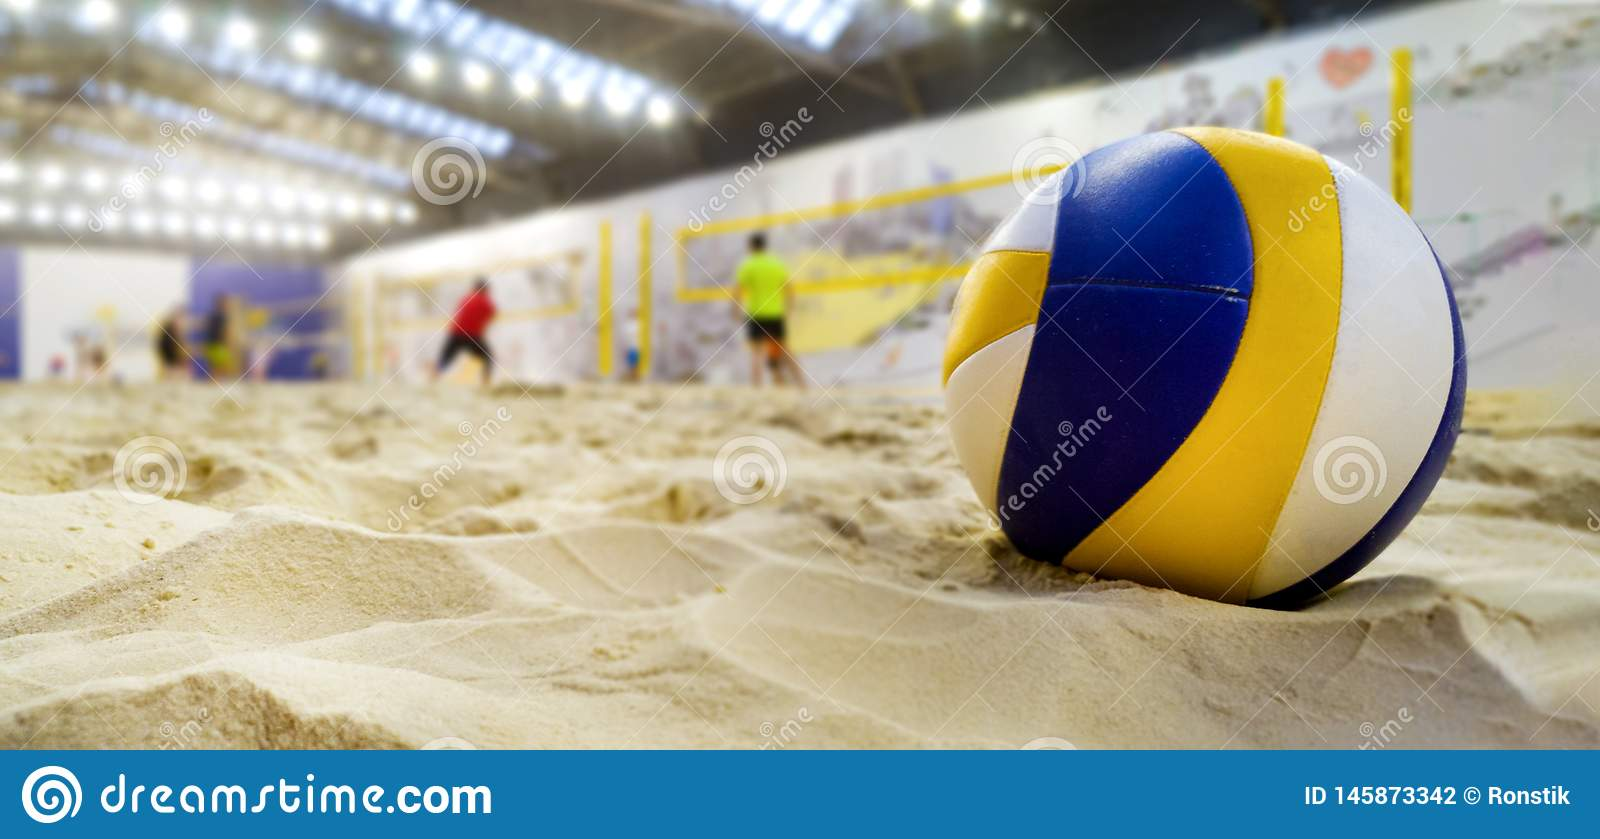 6 115 Indoor Volleyball Photos Free Royalty Free Stock Photos From Dreamstime